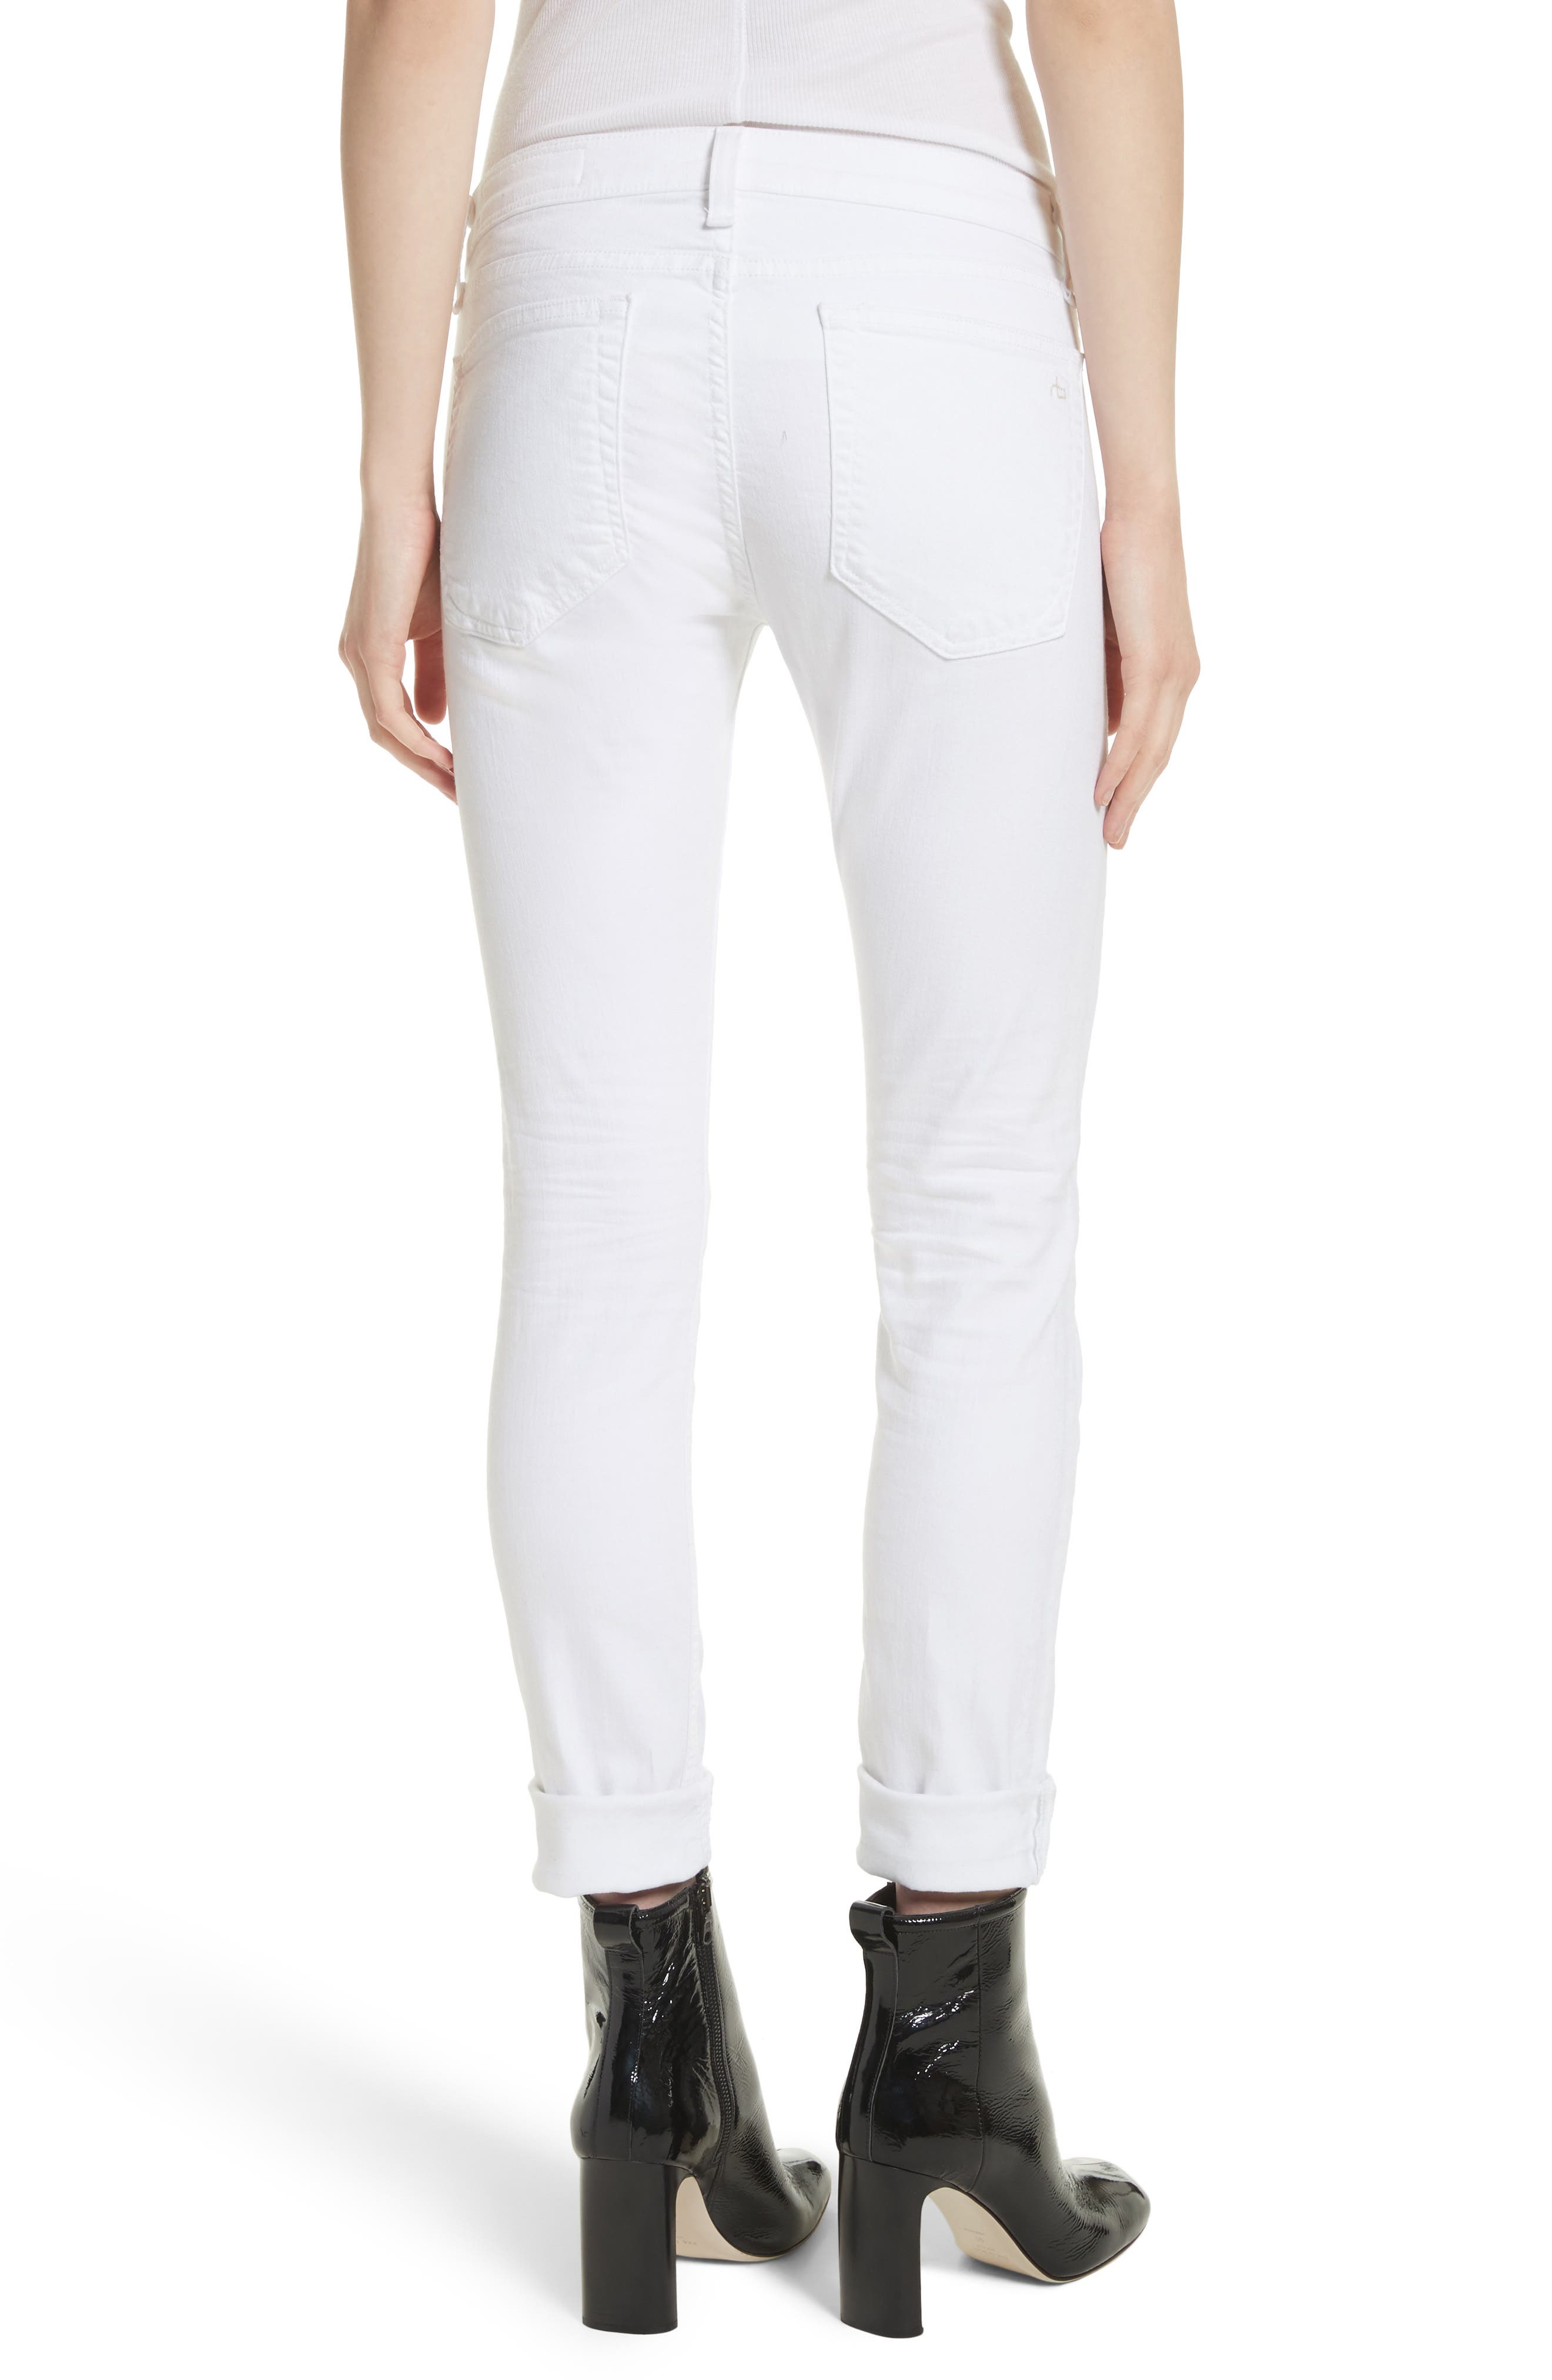 RAG & BONE, 'The Dre' Skinny Jeans, Alternate thumbnail 2, color, BRIGHT WHITE